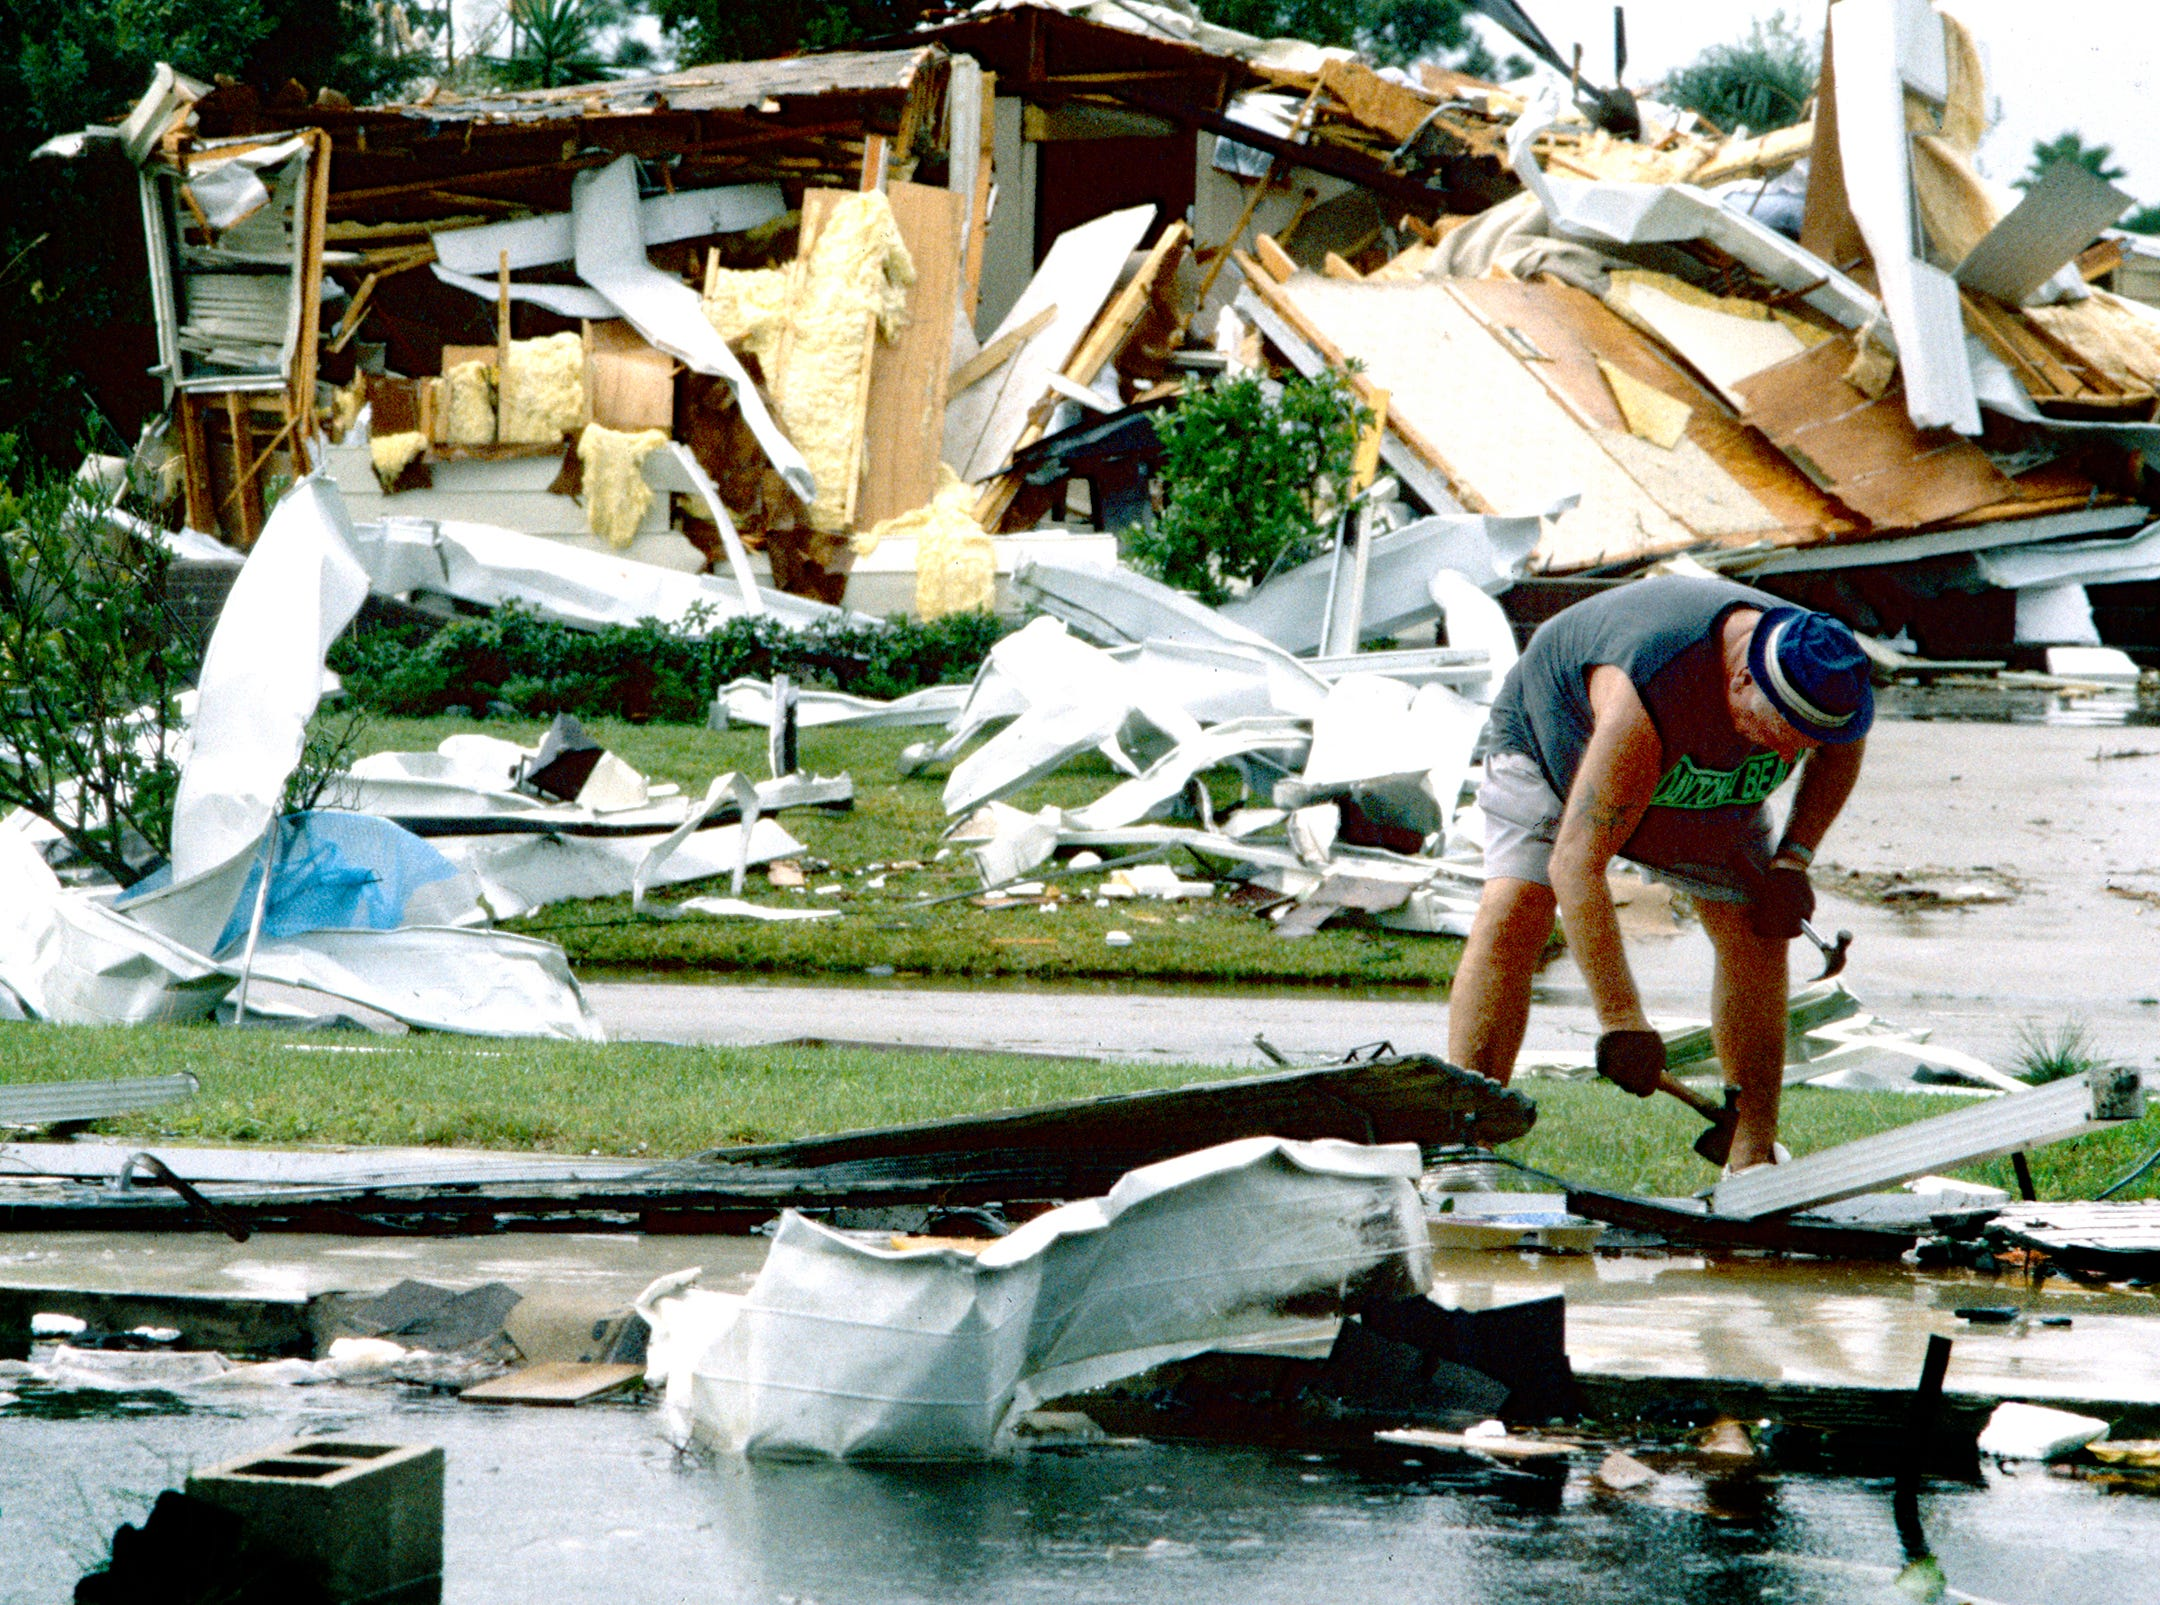 November 16, 1994 - Robert Sacco works where a neighbor's home in Barefoot Bay used to be on the corner of Lantania Drive and East Periwinkle Circle. The tornado picked up the home and blew it across the street, behind were Sacco is standing, into the front yard of a neighbor's home.